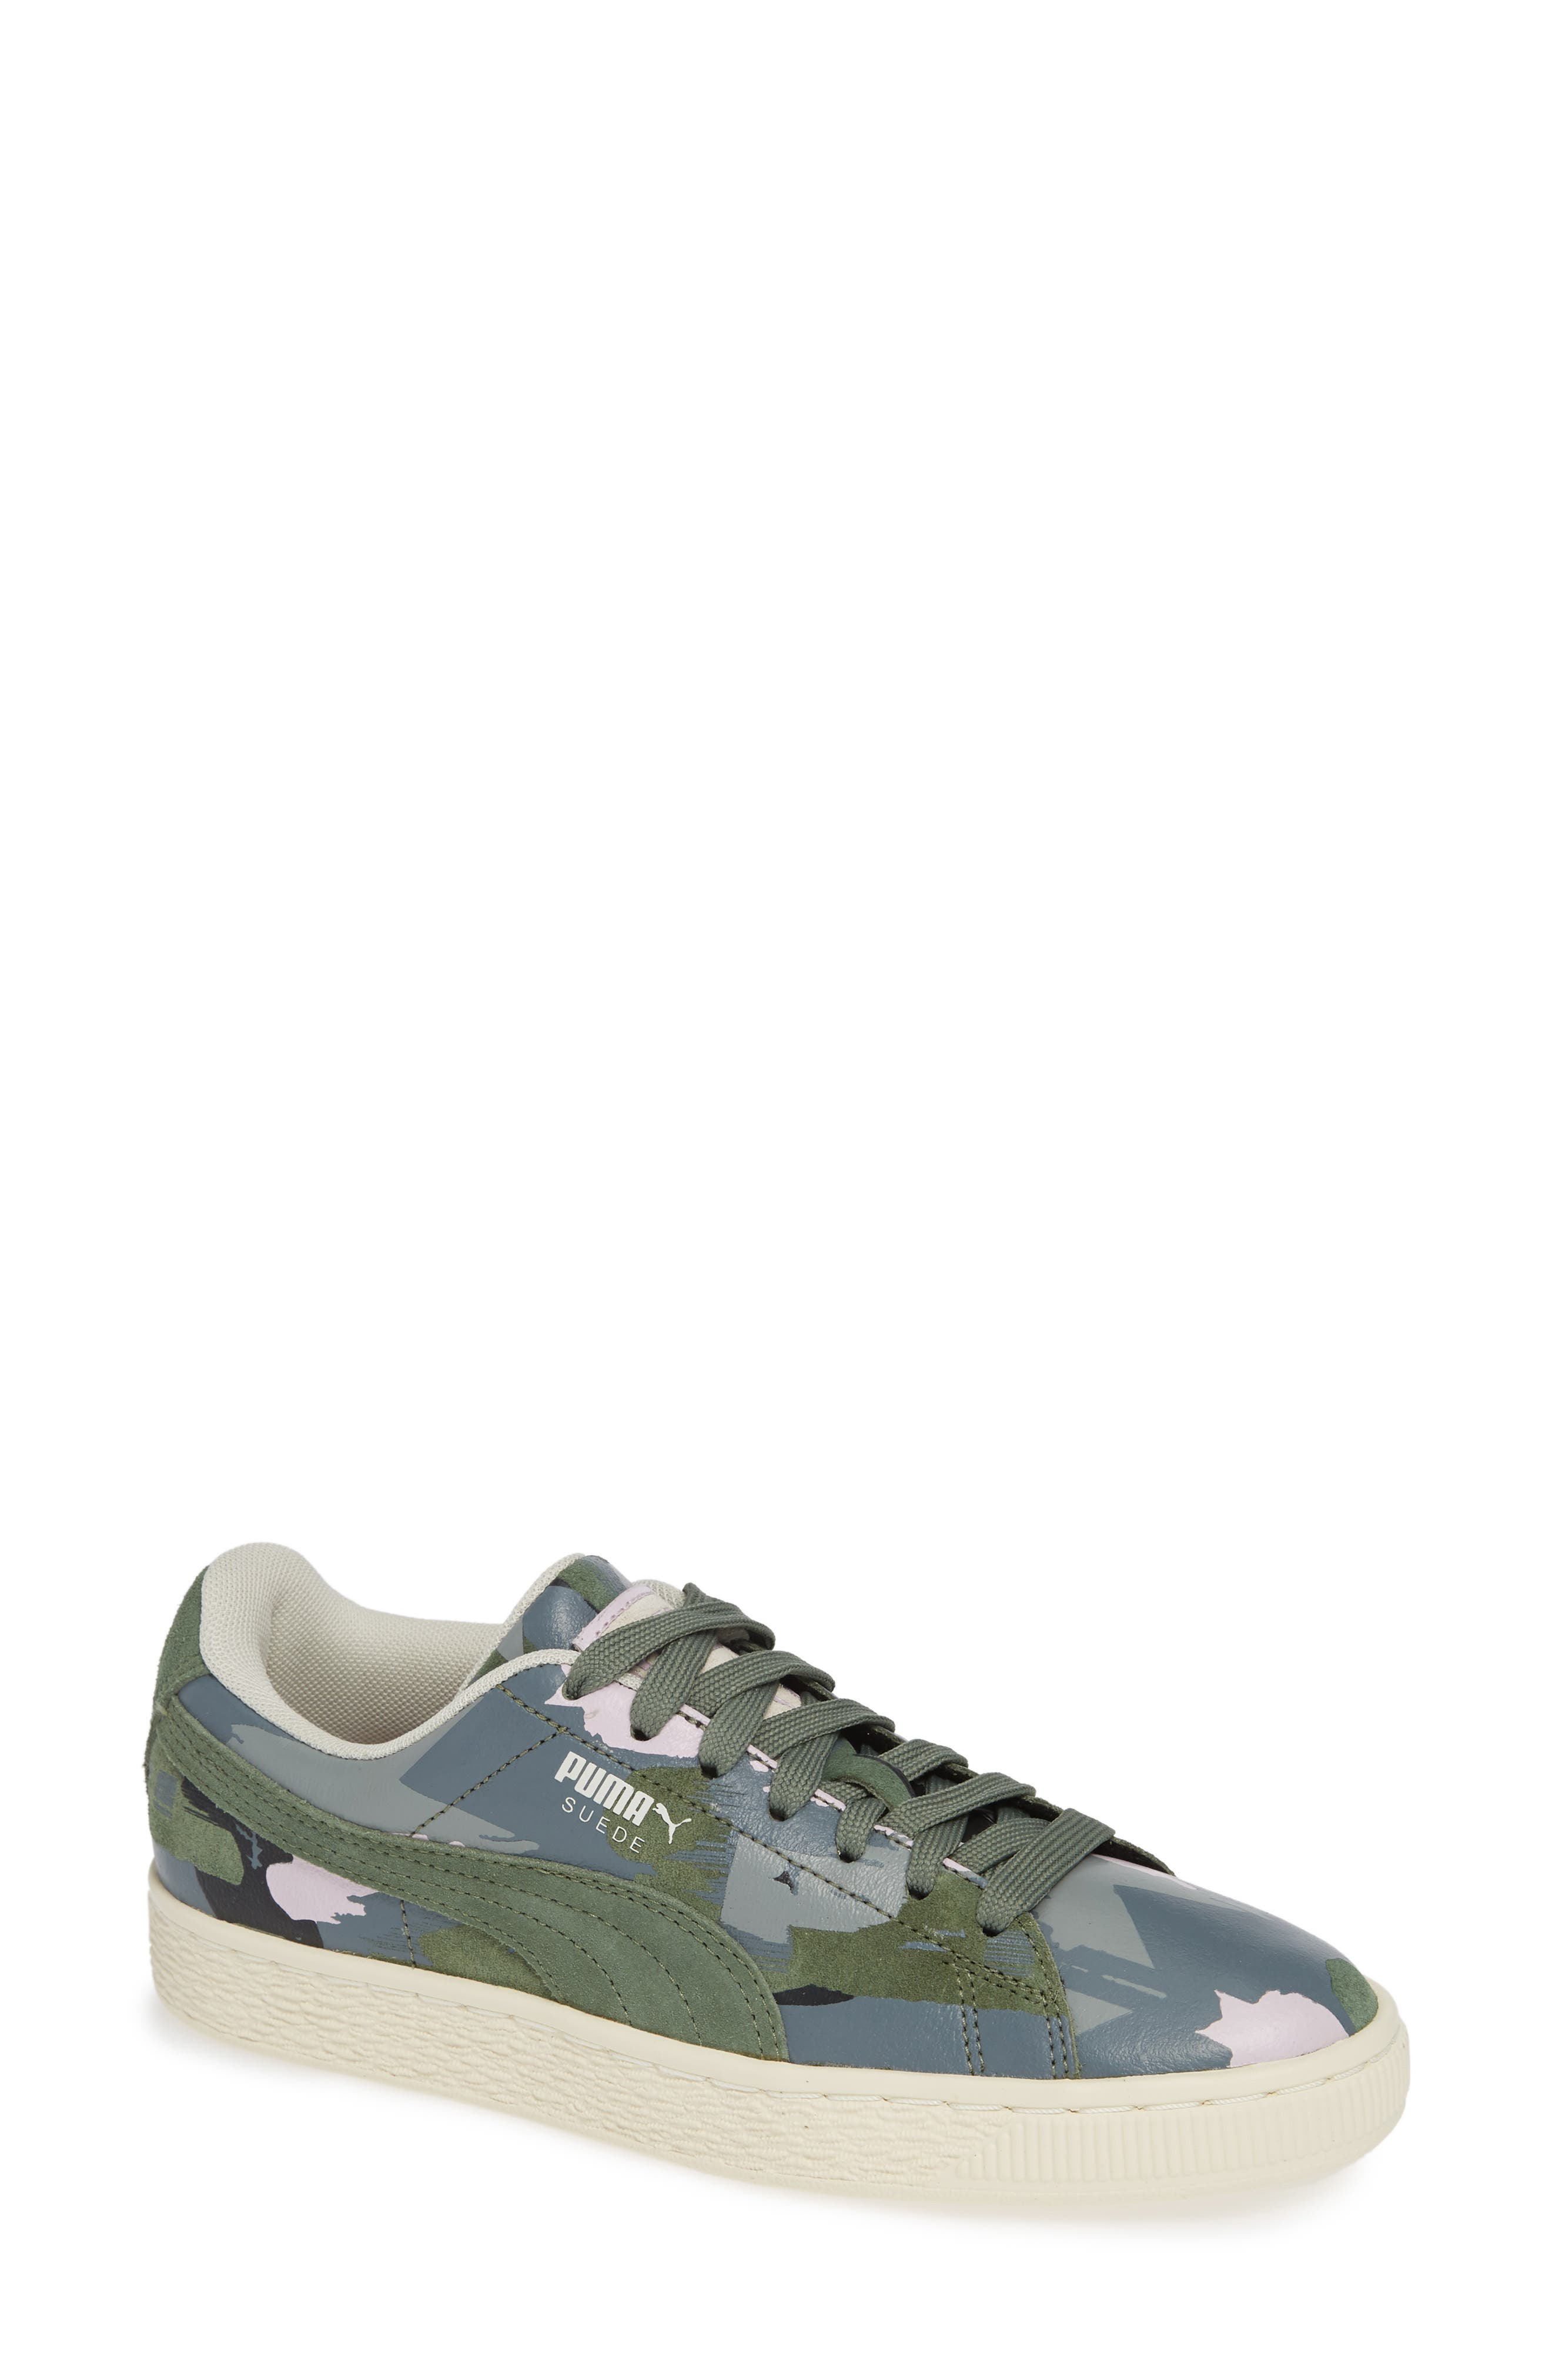 'Suede Classic' Sneaker,                             Main thumbnail 1, color,                             301